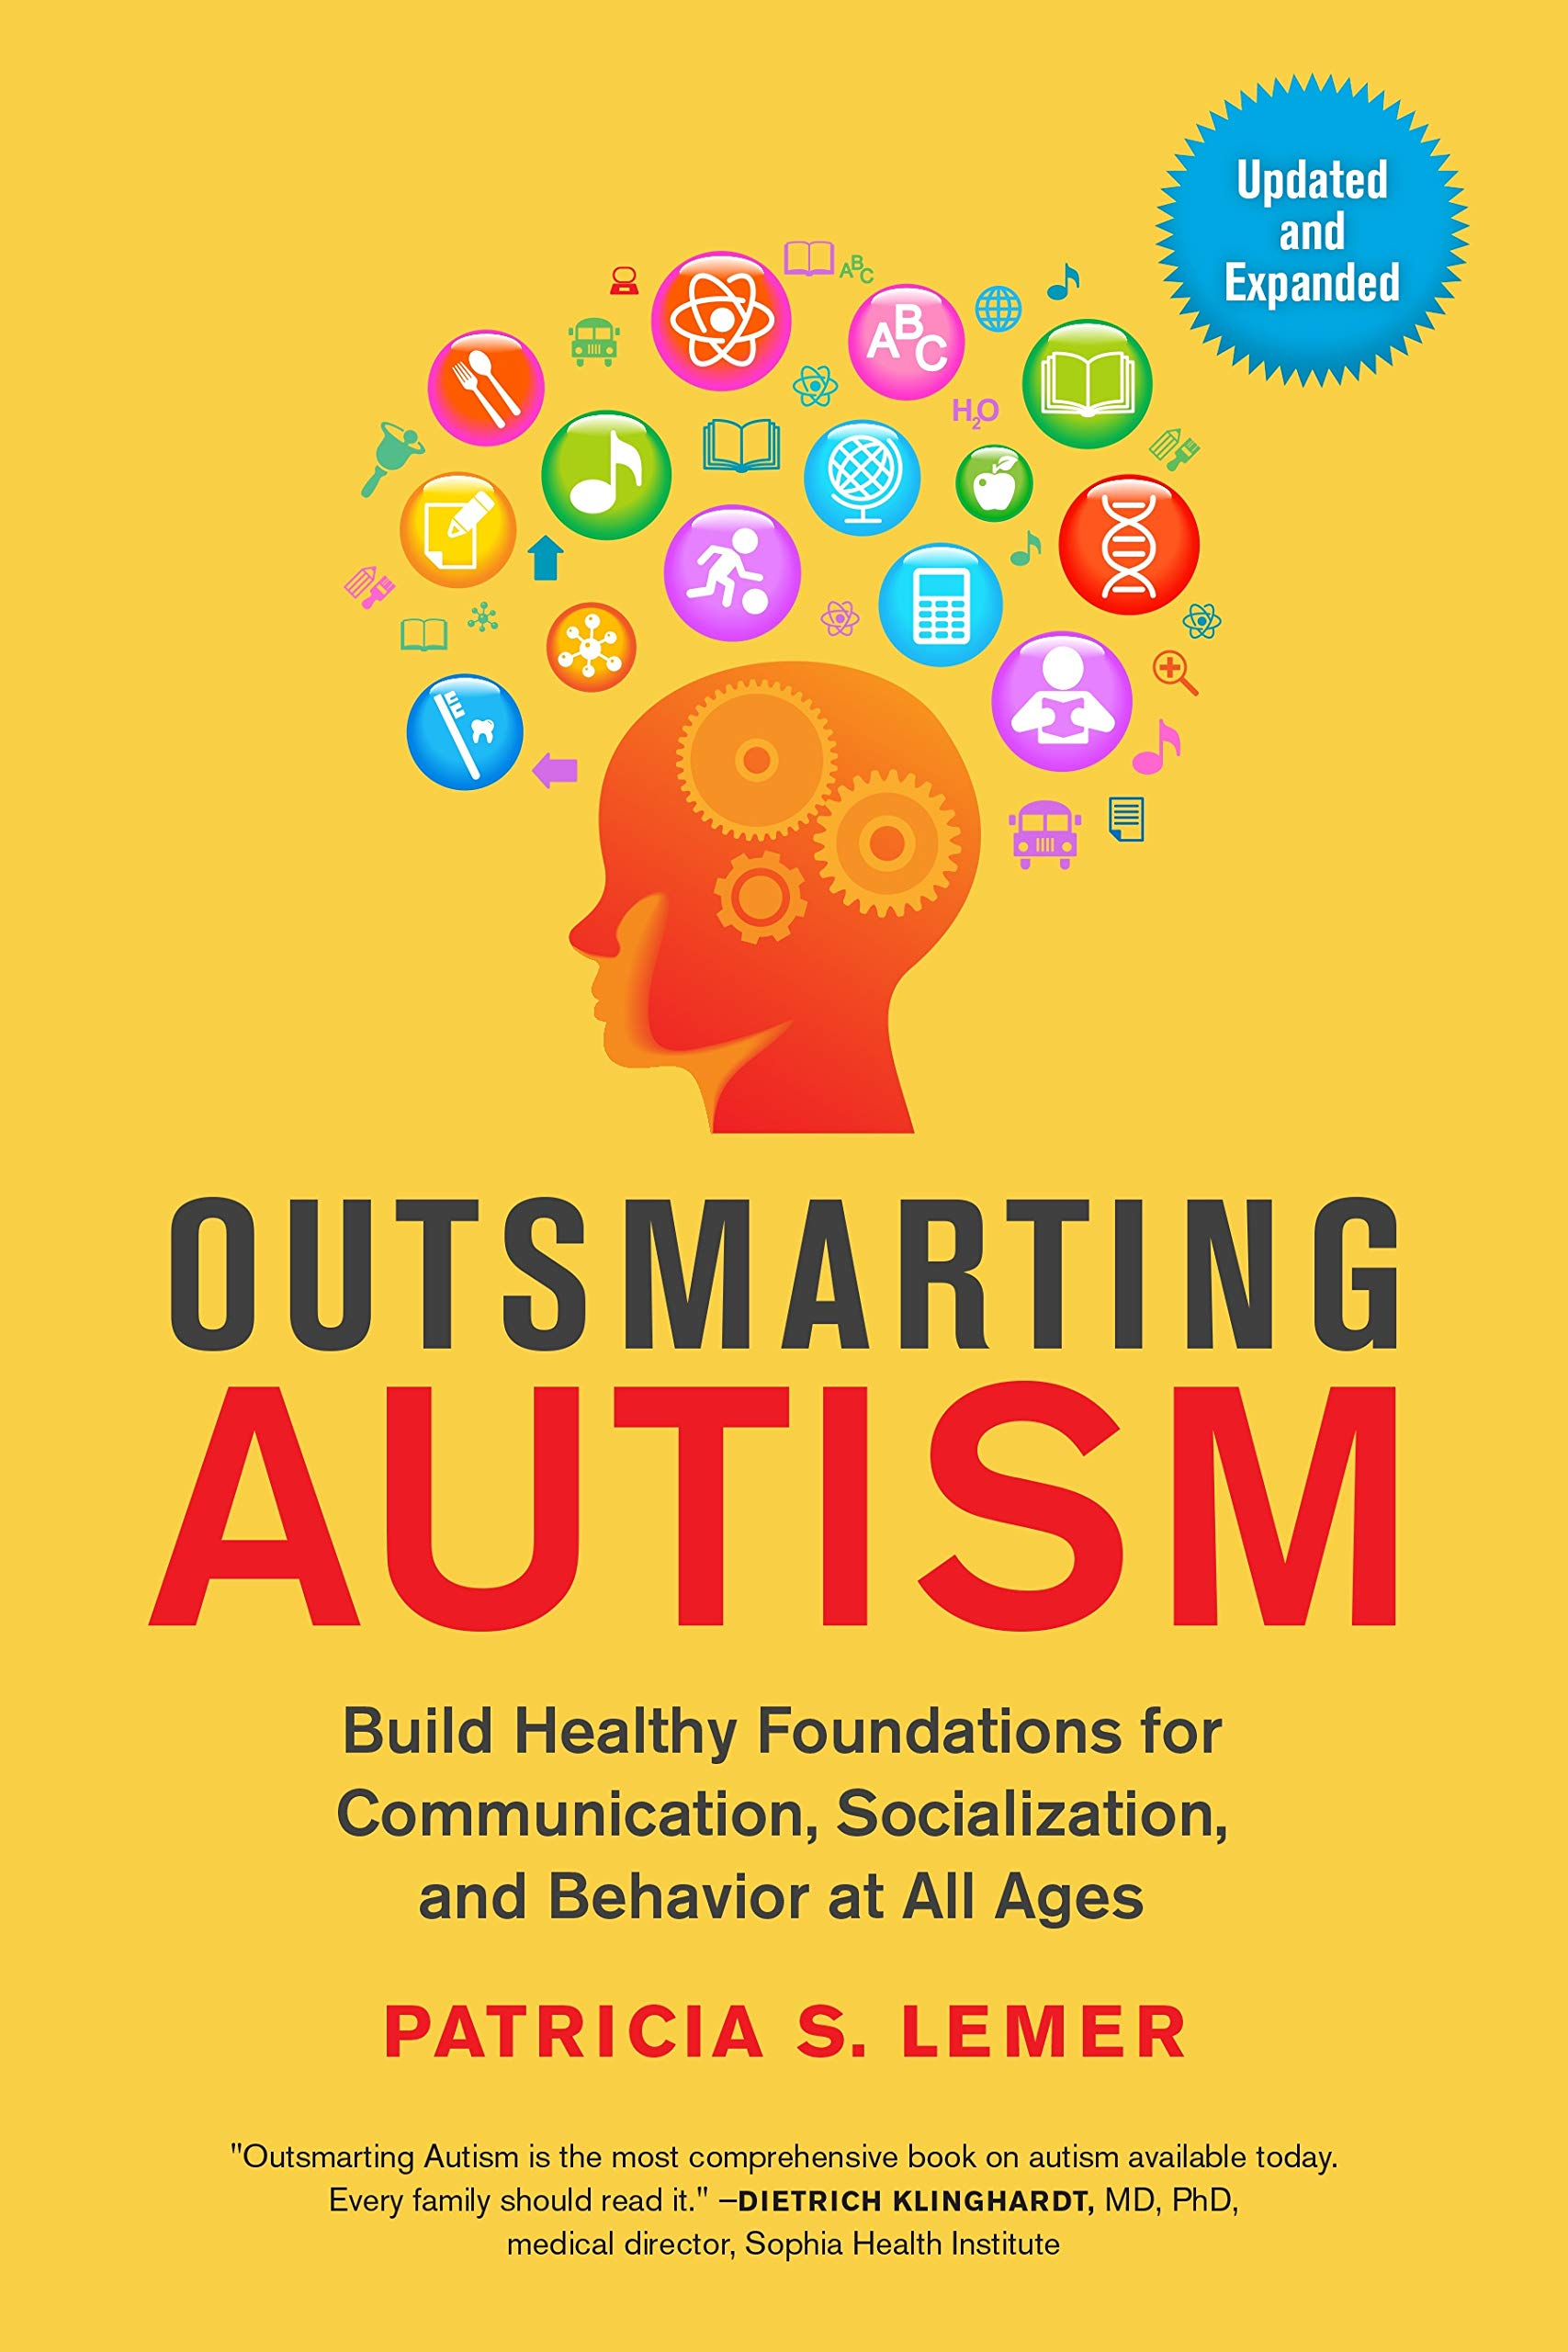 The Next Hot Topic In Autism Research >> Outsmarting Autism Updated And Expanded Build Healthy Foundations